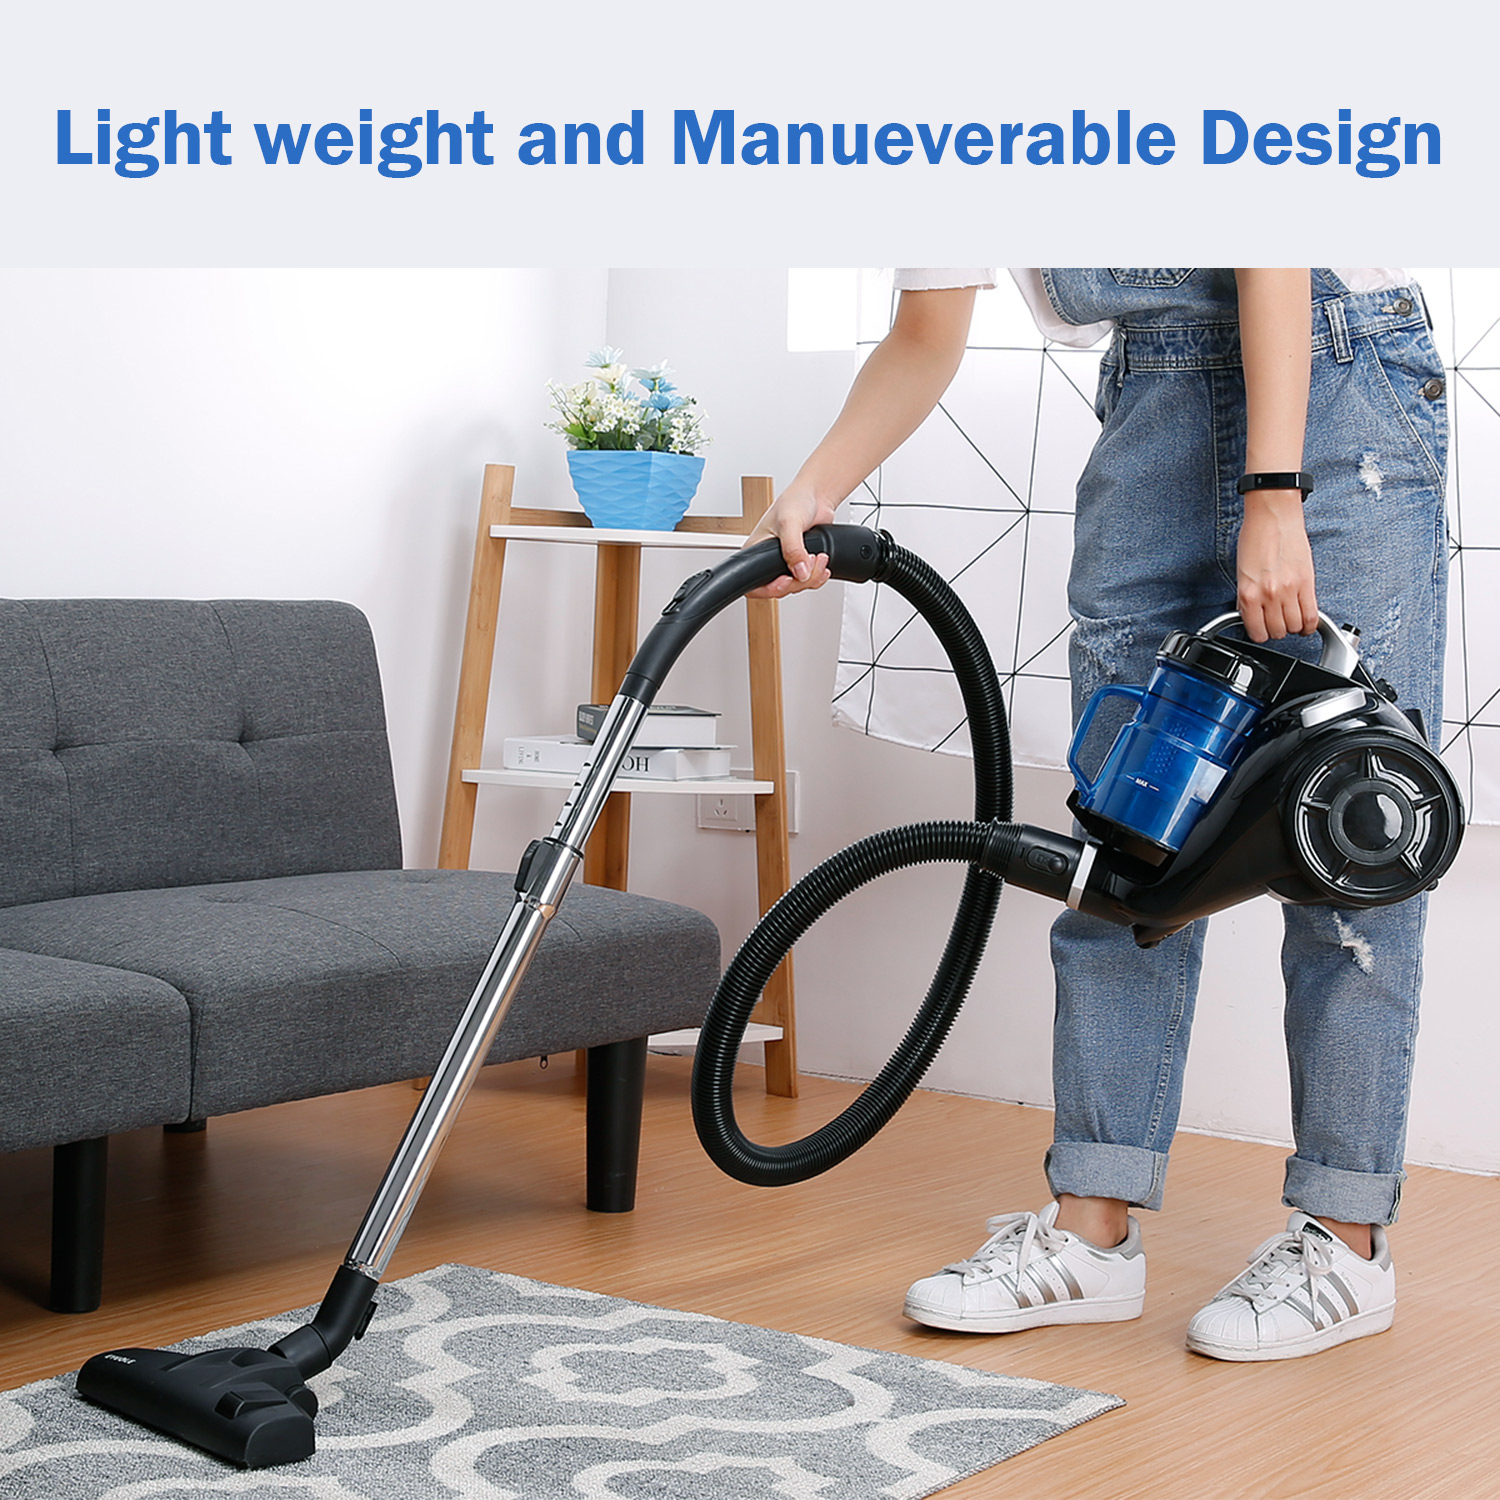 Eyugle Upright Corded Floor Carpet Bagless Canister Vacuum